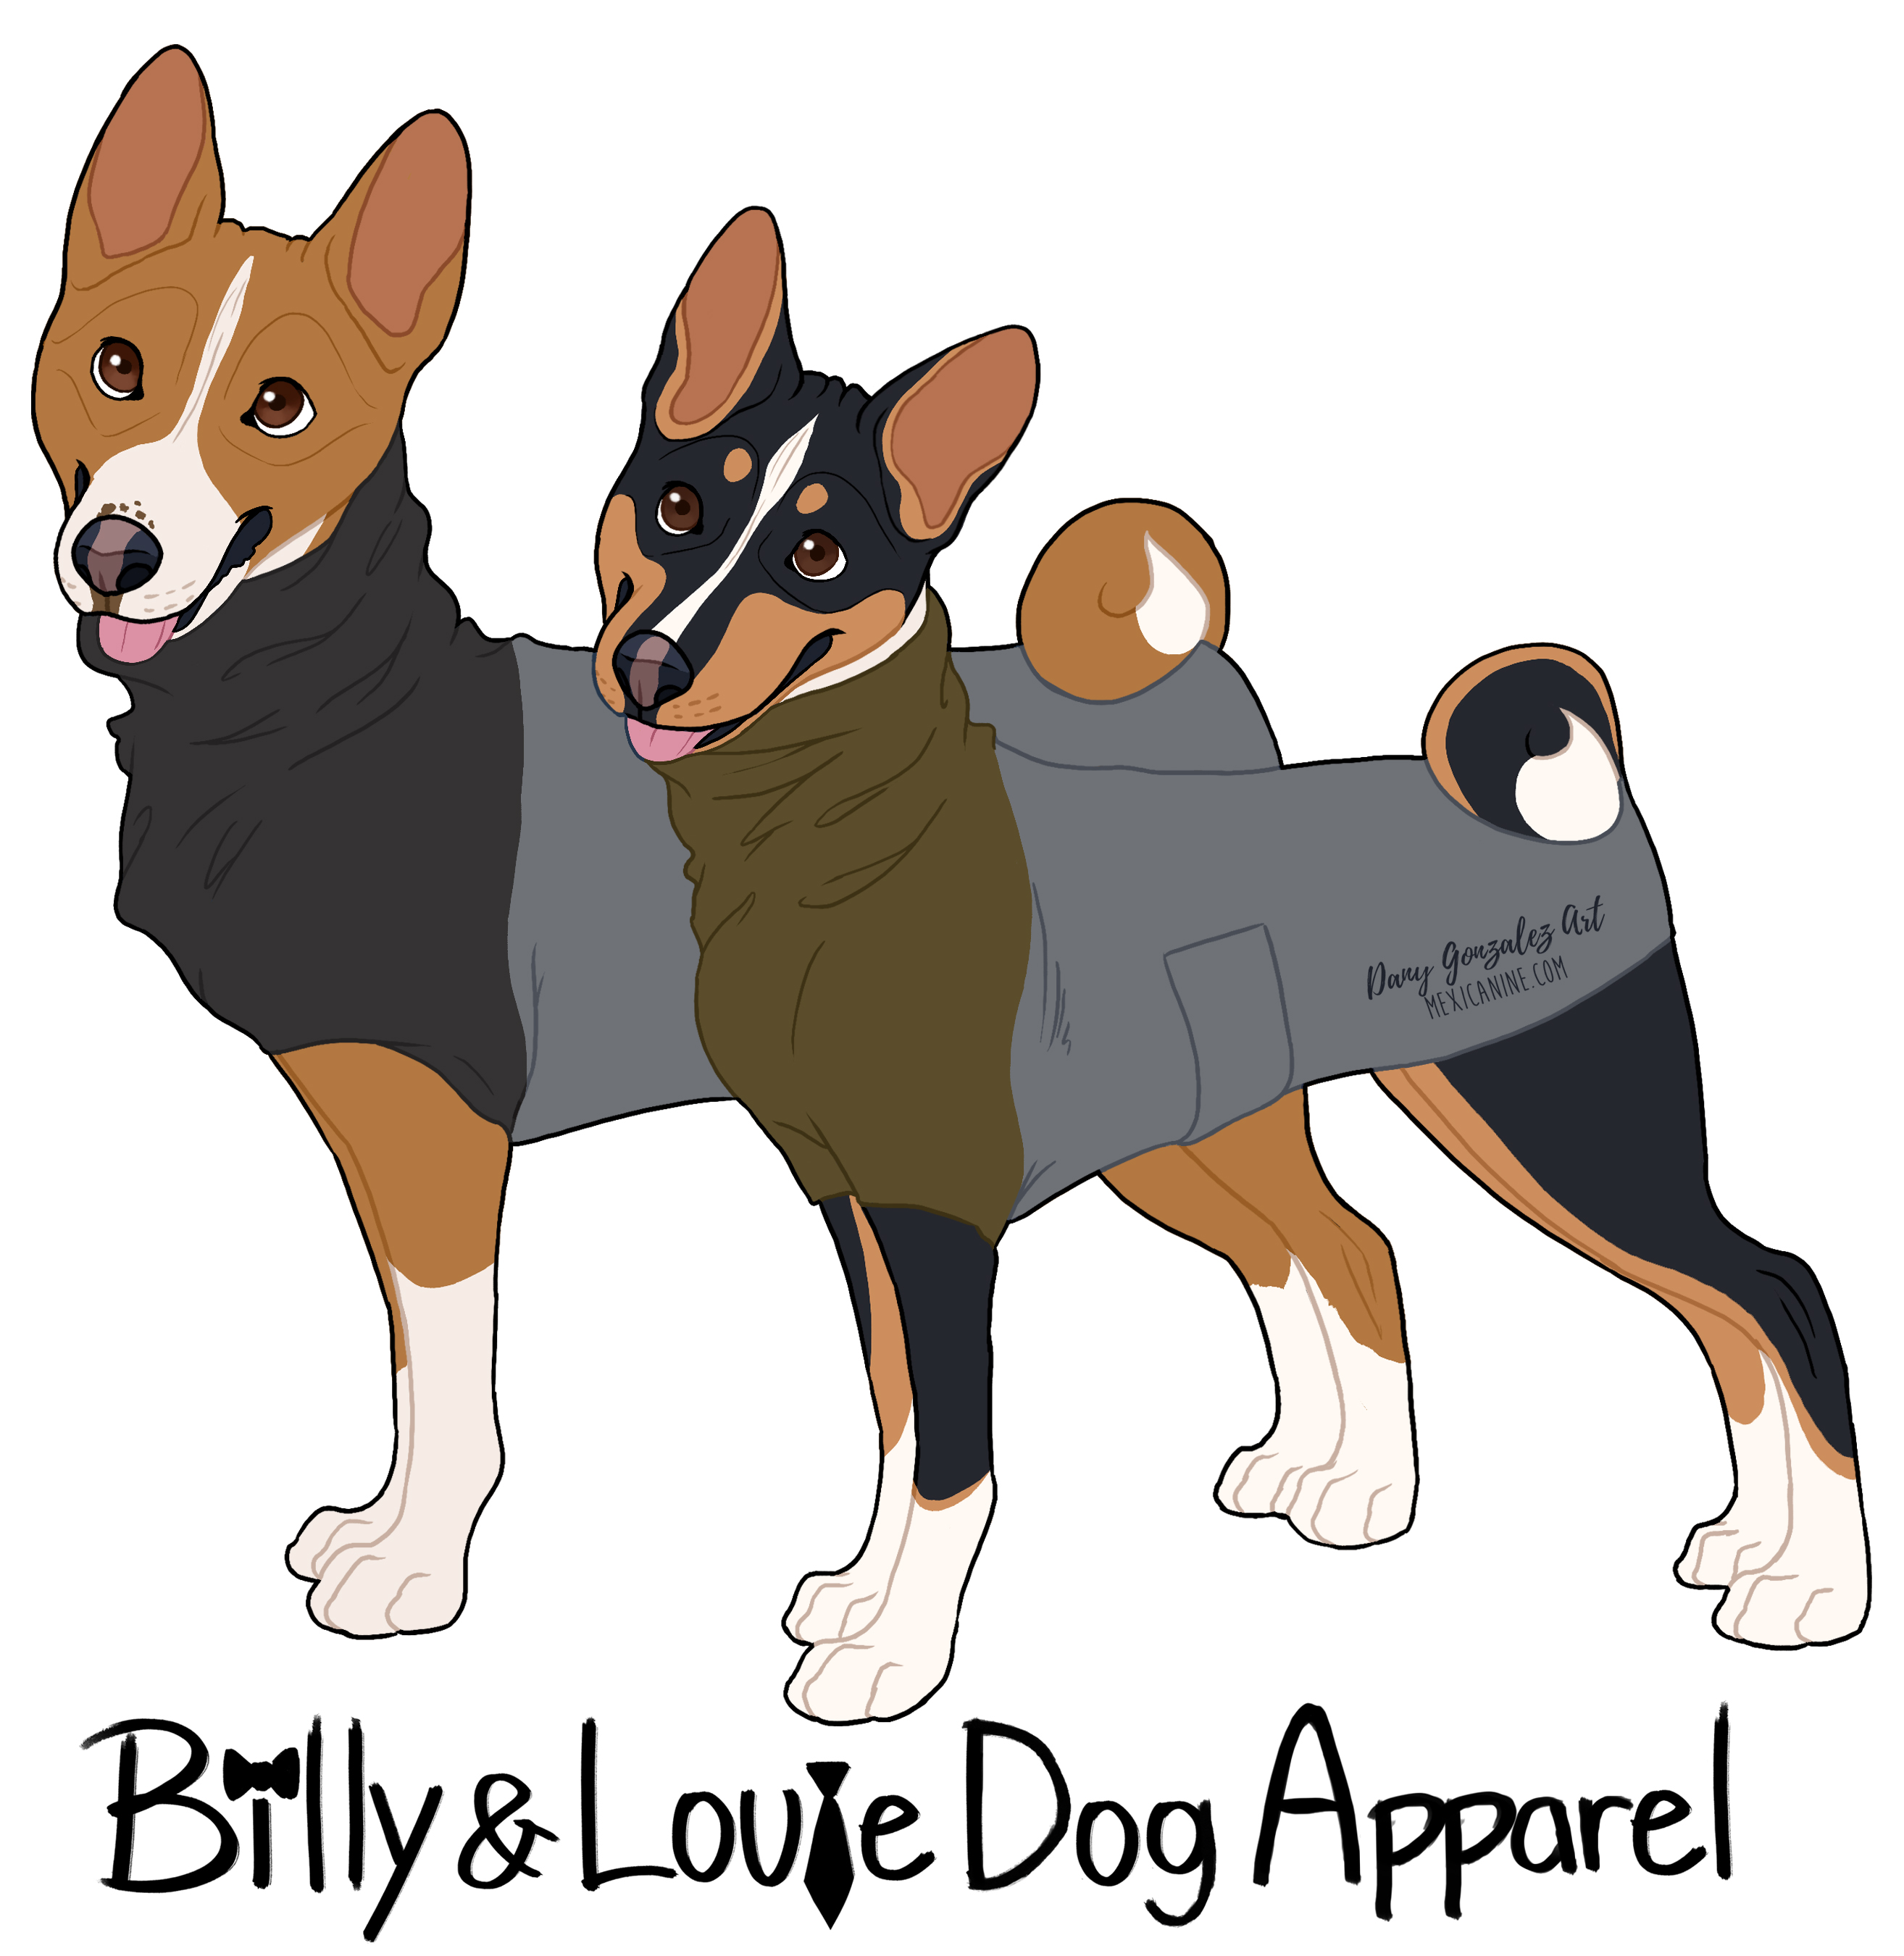 billy&louie dog apparel